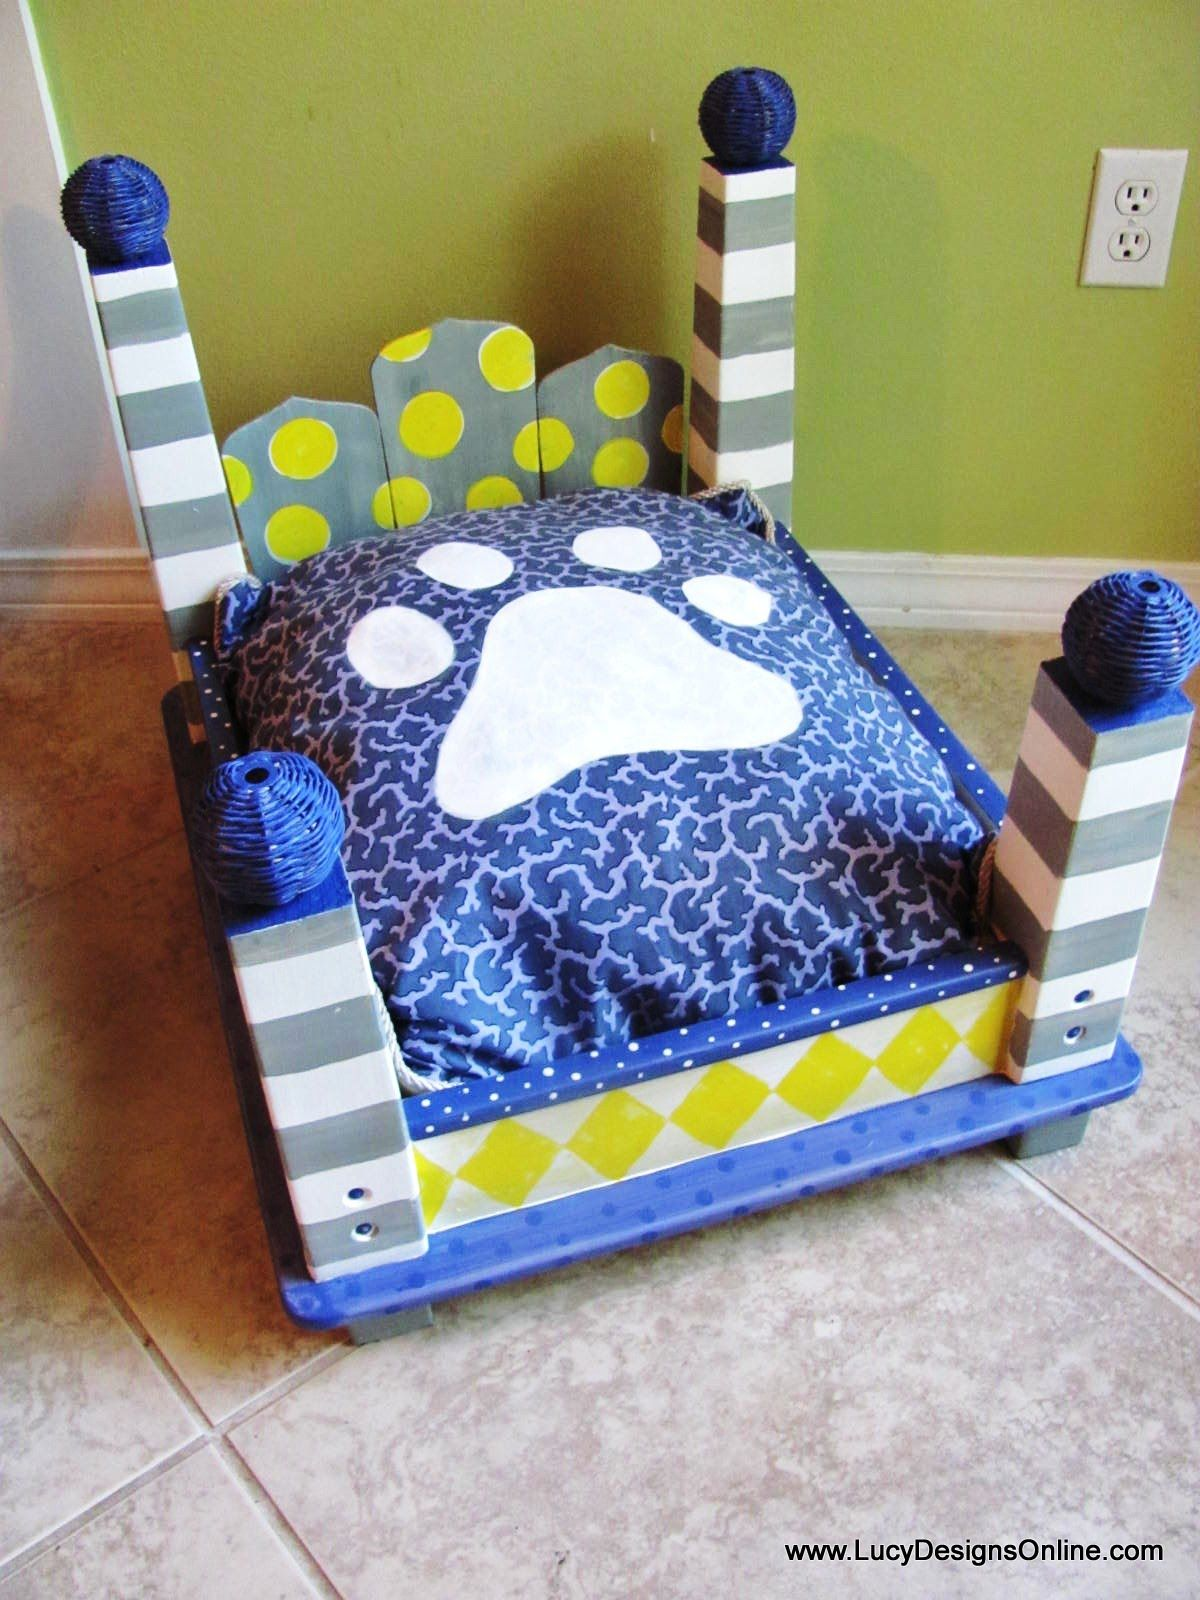 Appealing Coffee Table Pet Bed Images Best inspiration home